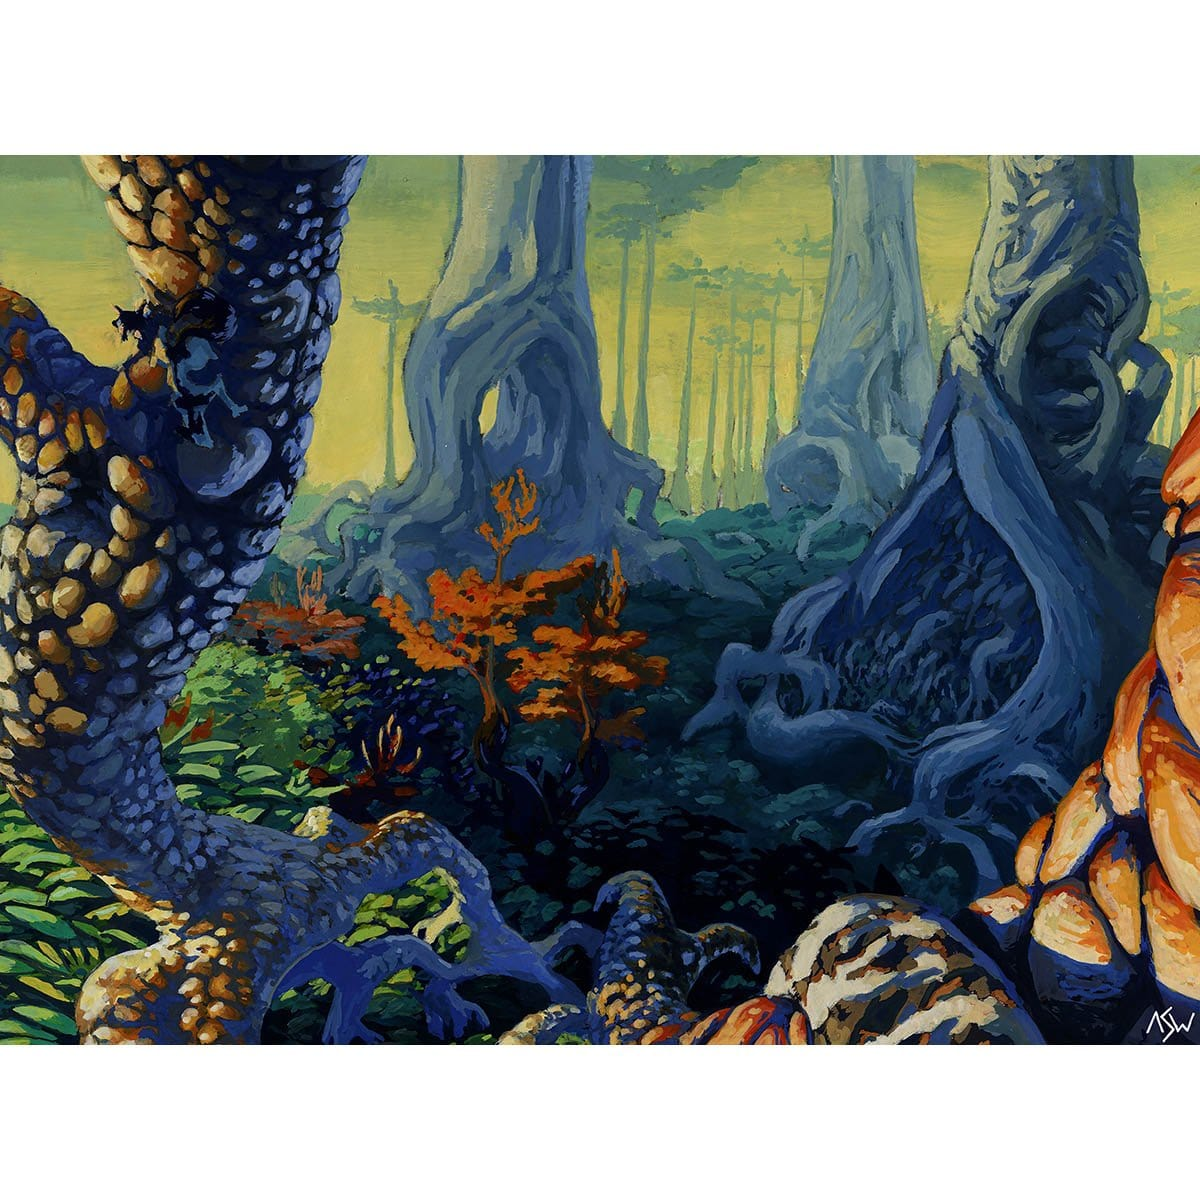 Forest (Urza's Saga - C) Print - Print - Original Magic Art - Accessories for Magic the Gathering and other card games